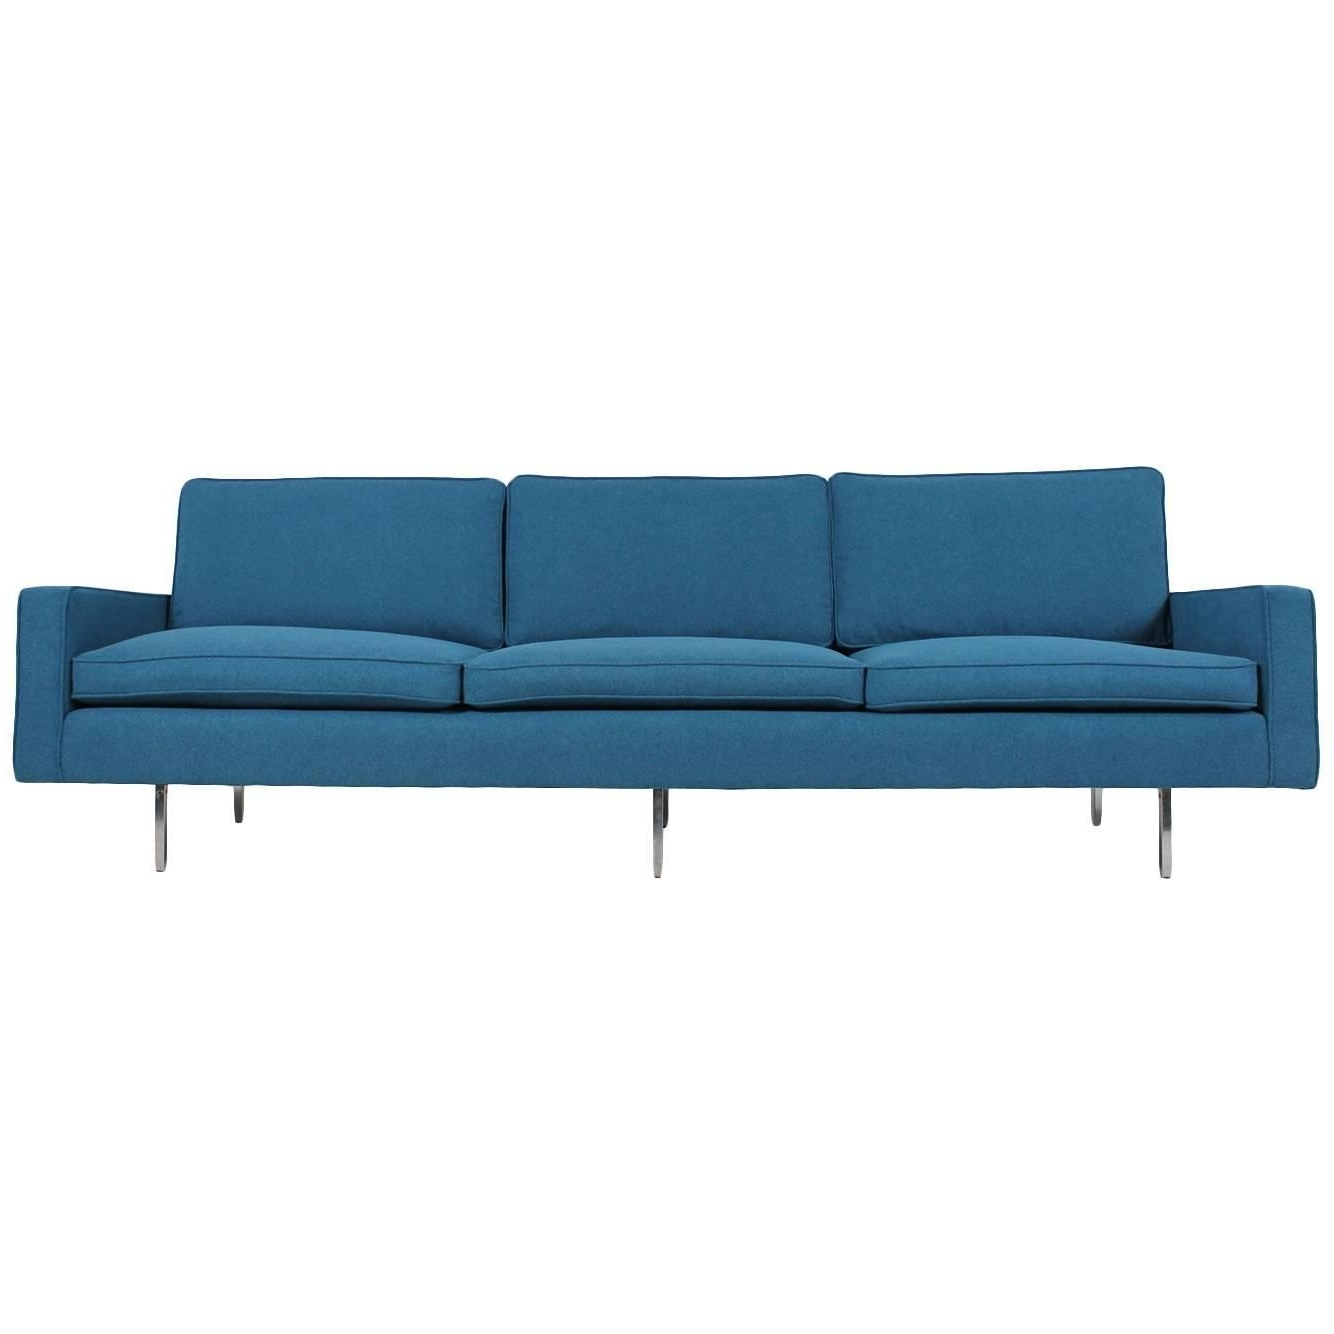 Latest Florence Knoll Sofas – 61 For Sale At 1Stdibs Pertaining To Florence Knoll Fabric Sofas (View 11 of 20)